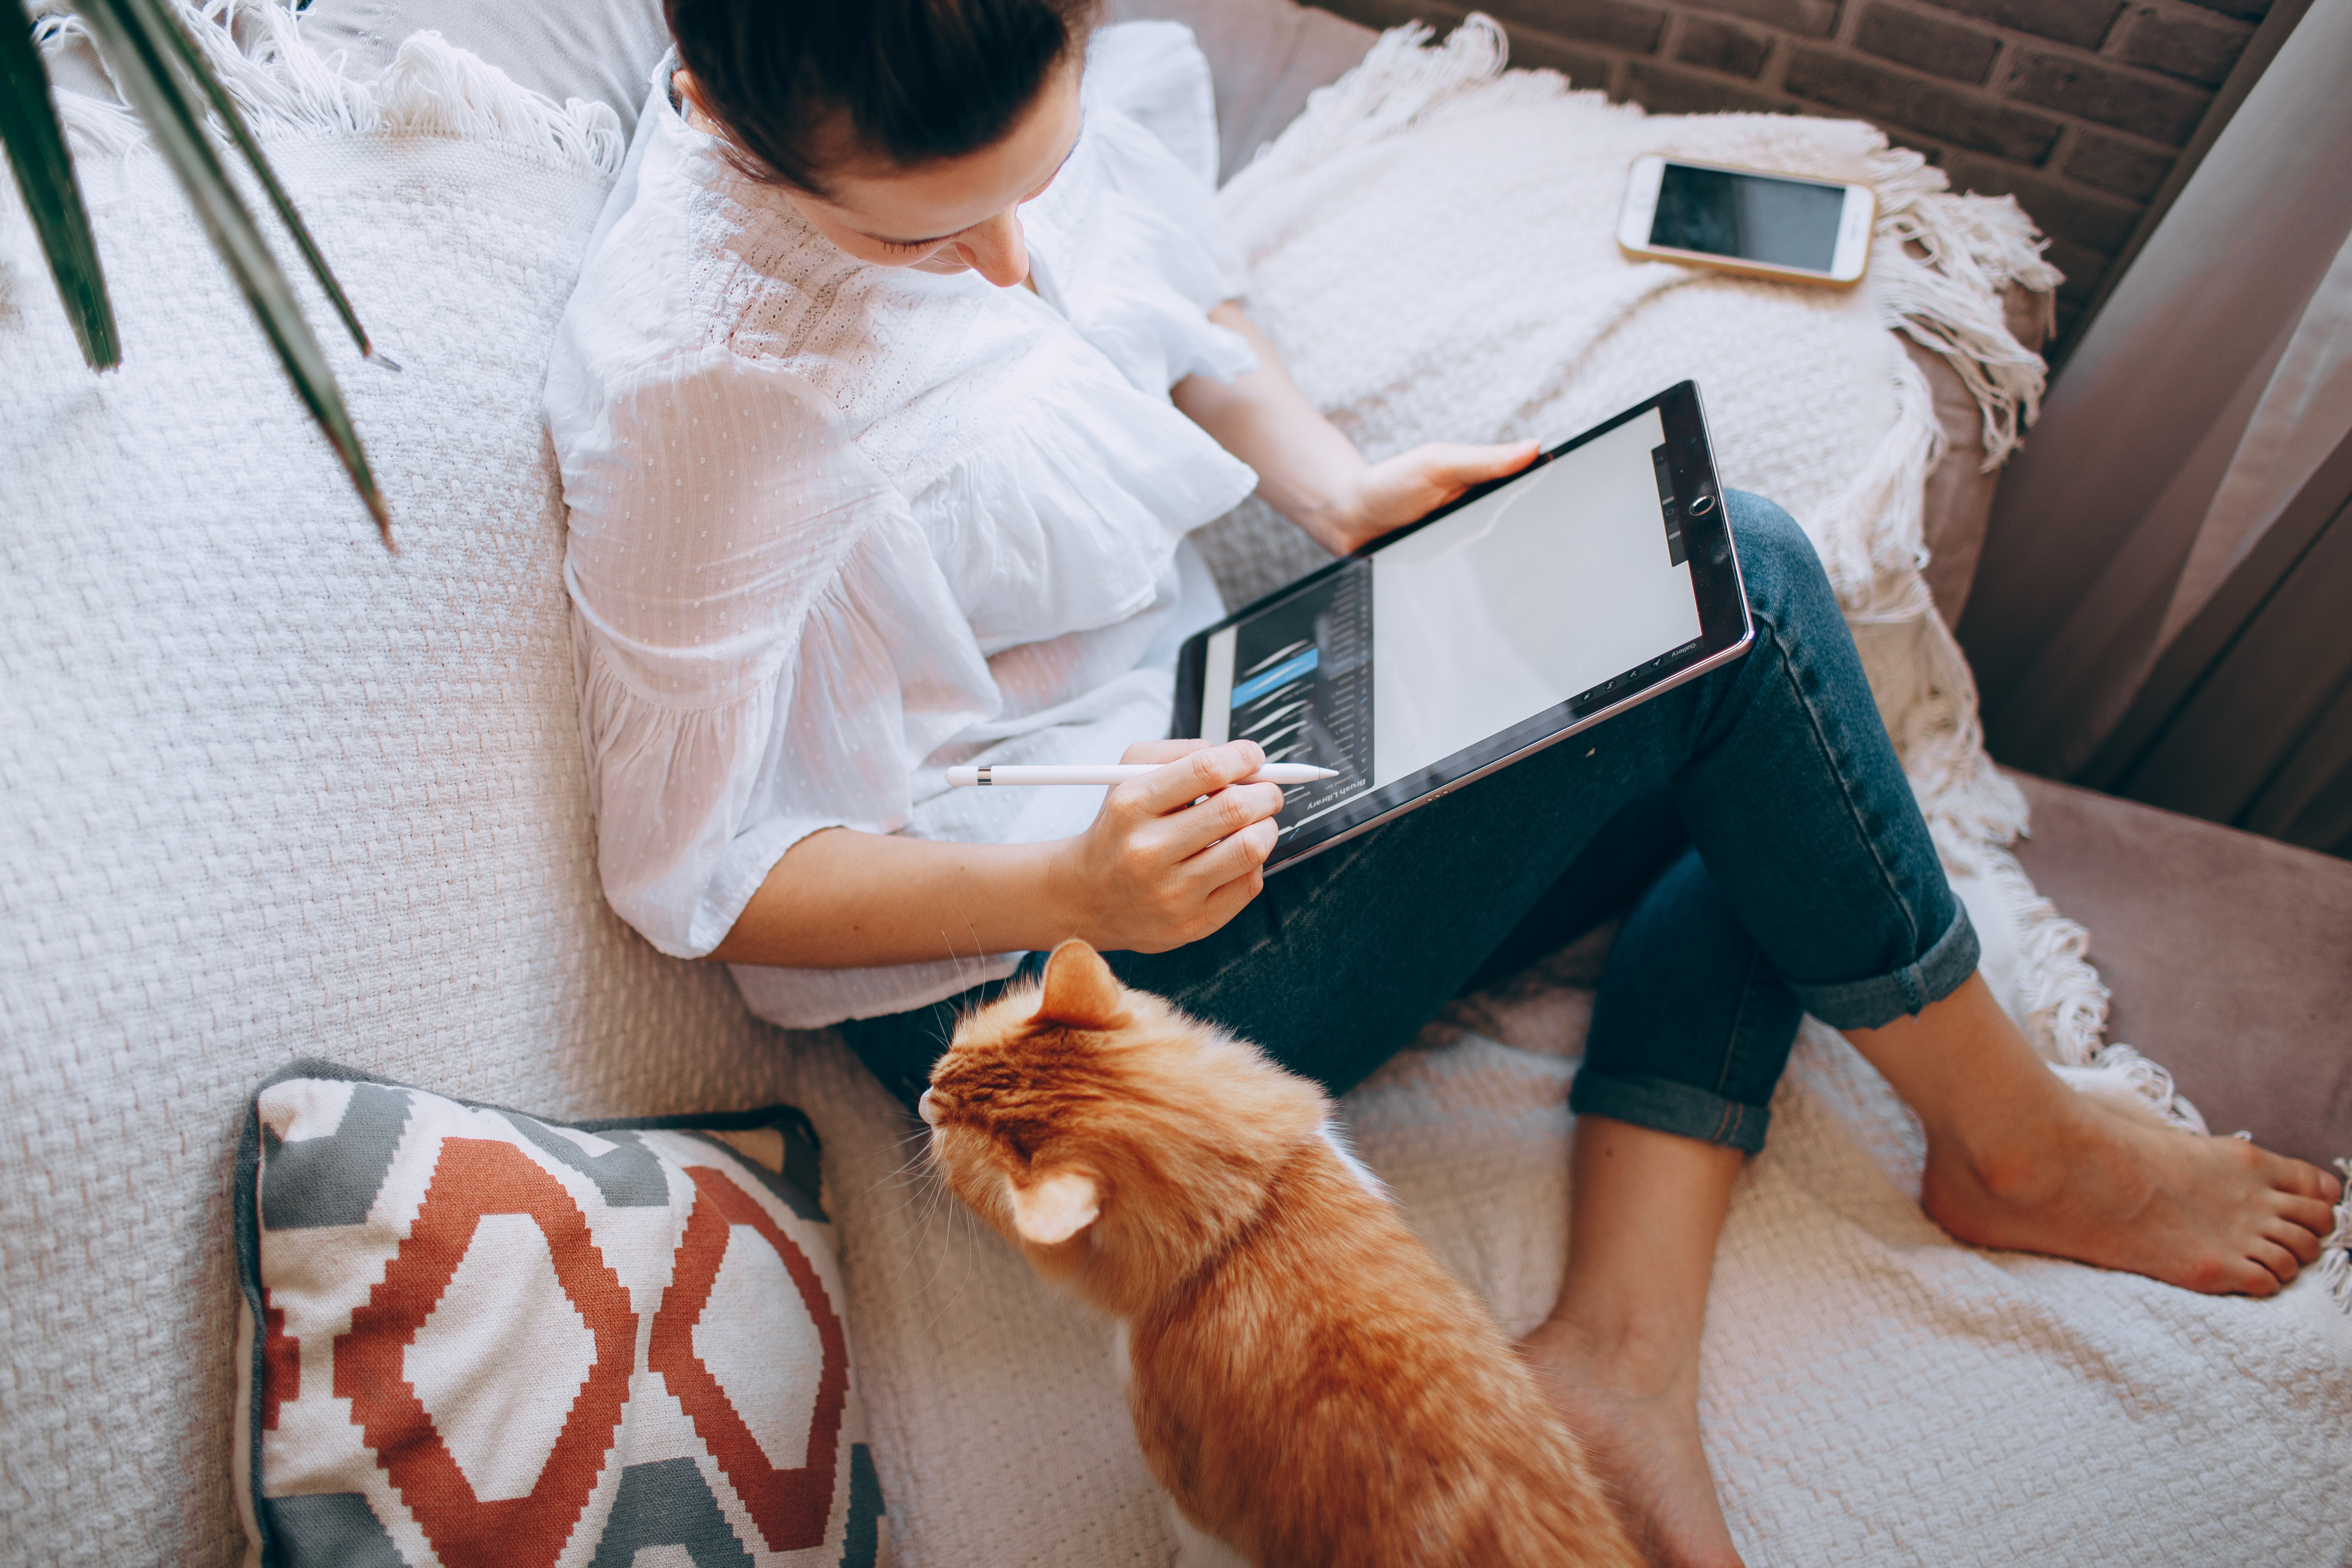 A person works on their tablet on the sofa with a ginger cat next to them